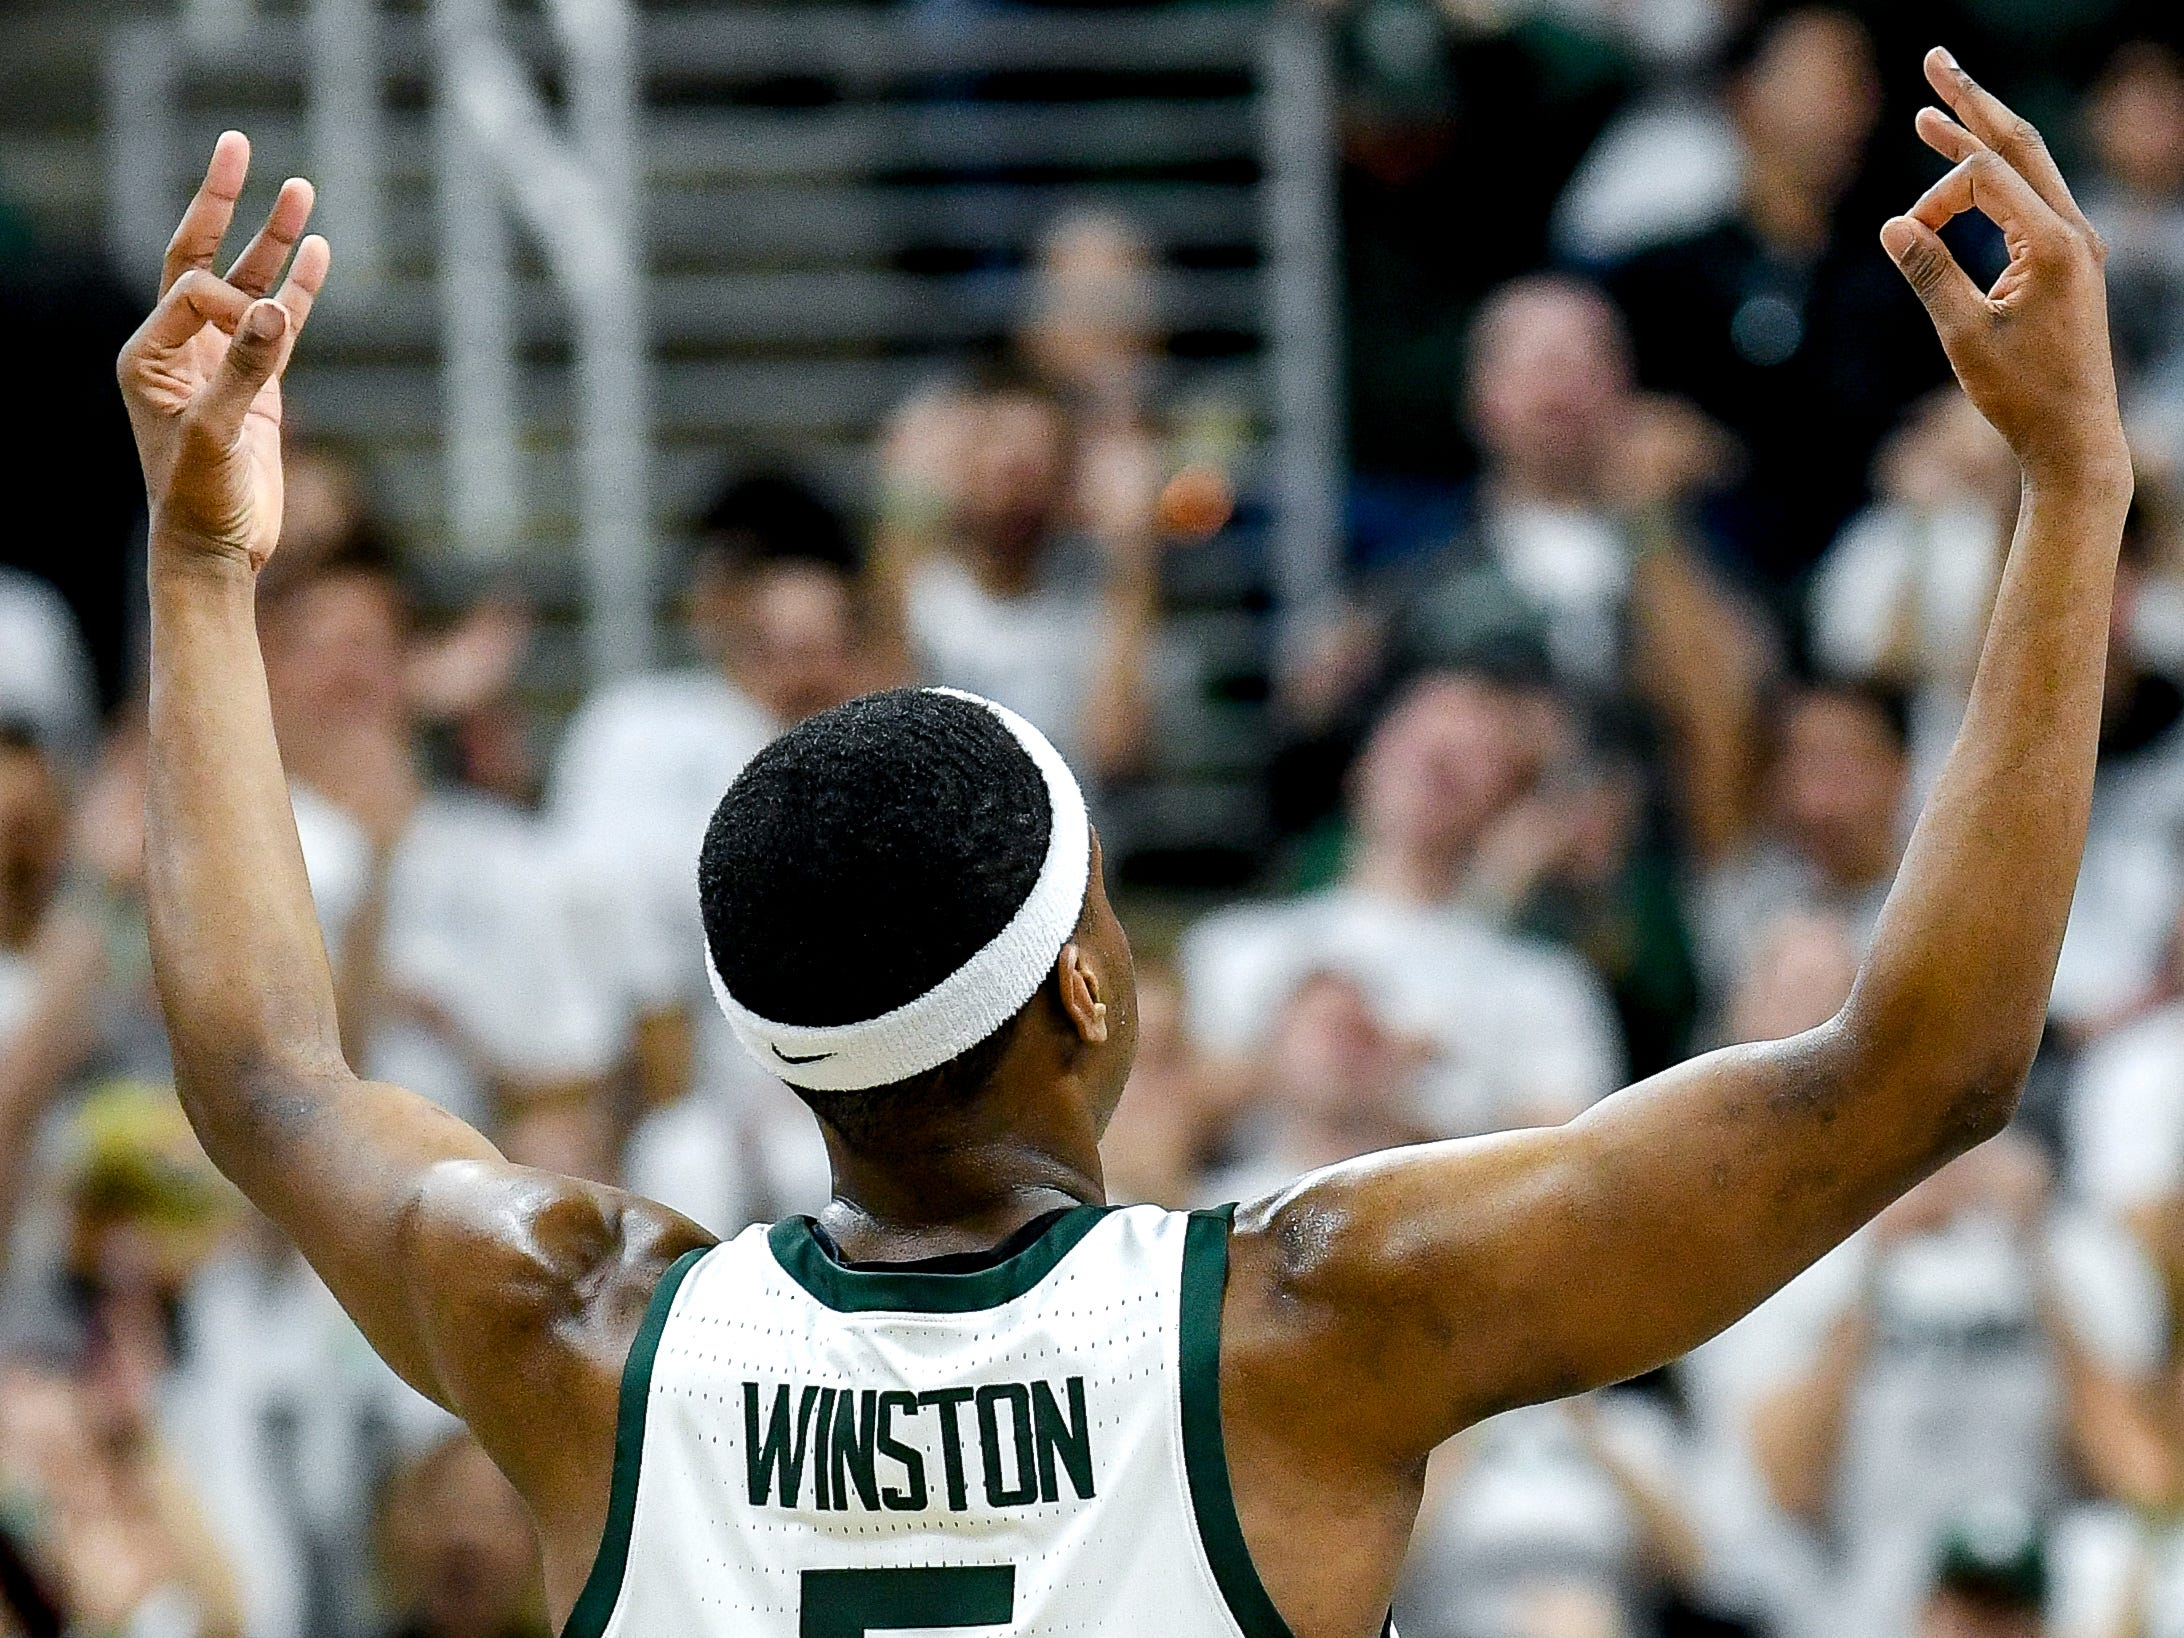 Michigan State's Cassius Winston celebrates after making a 3-poiner during the first half on Monday, Dec. 3, 2018, at the Breslin Center in East Lansing.